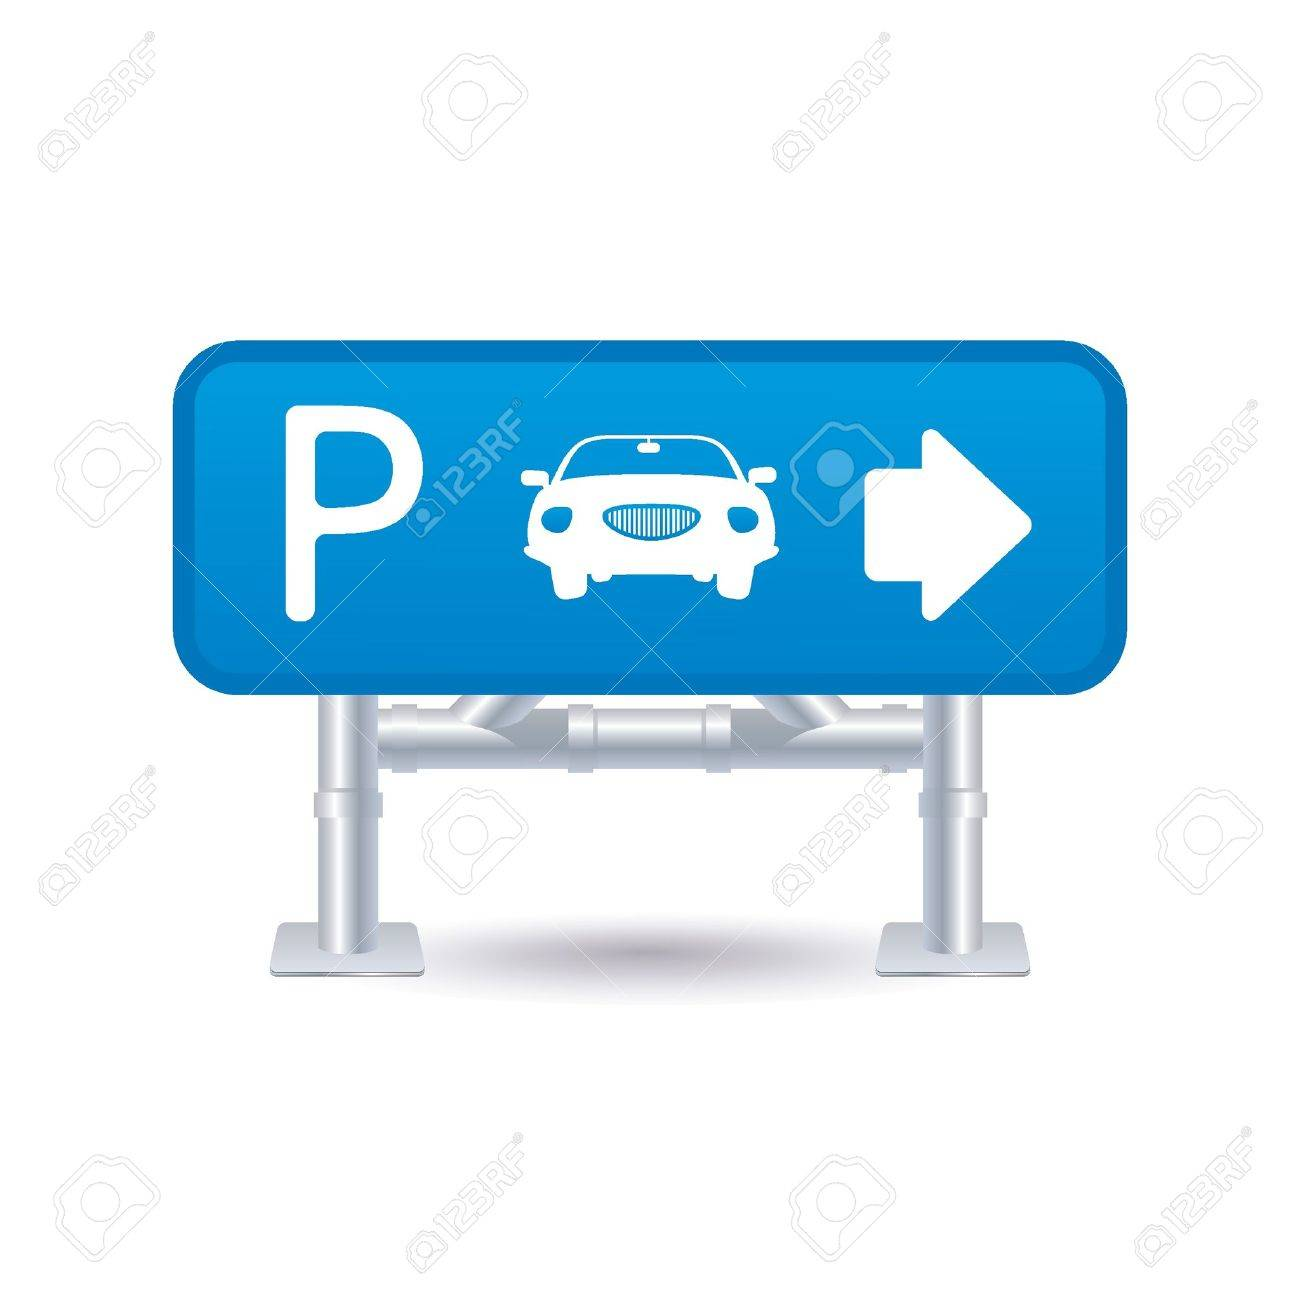 parking sign icon Stock Vector - 9201451